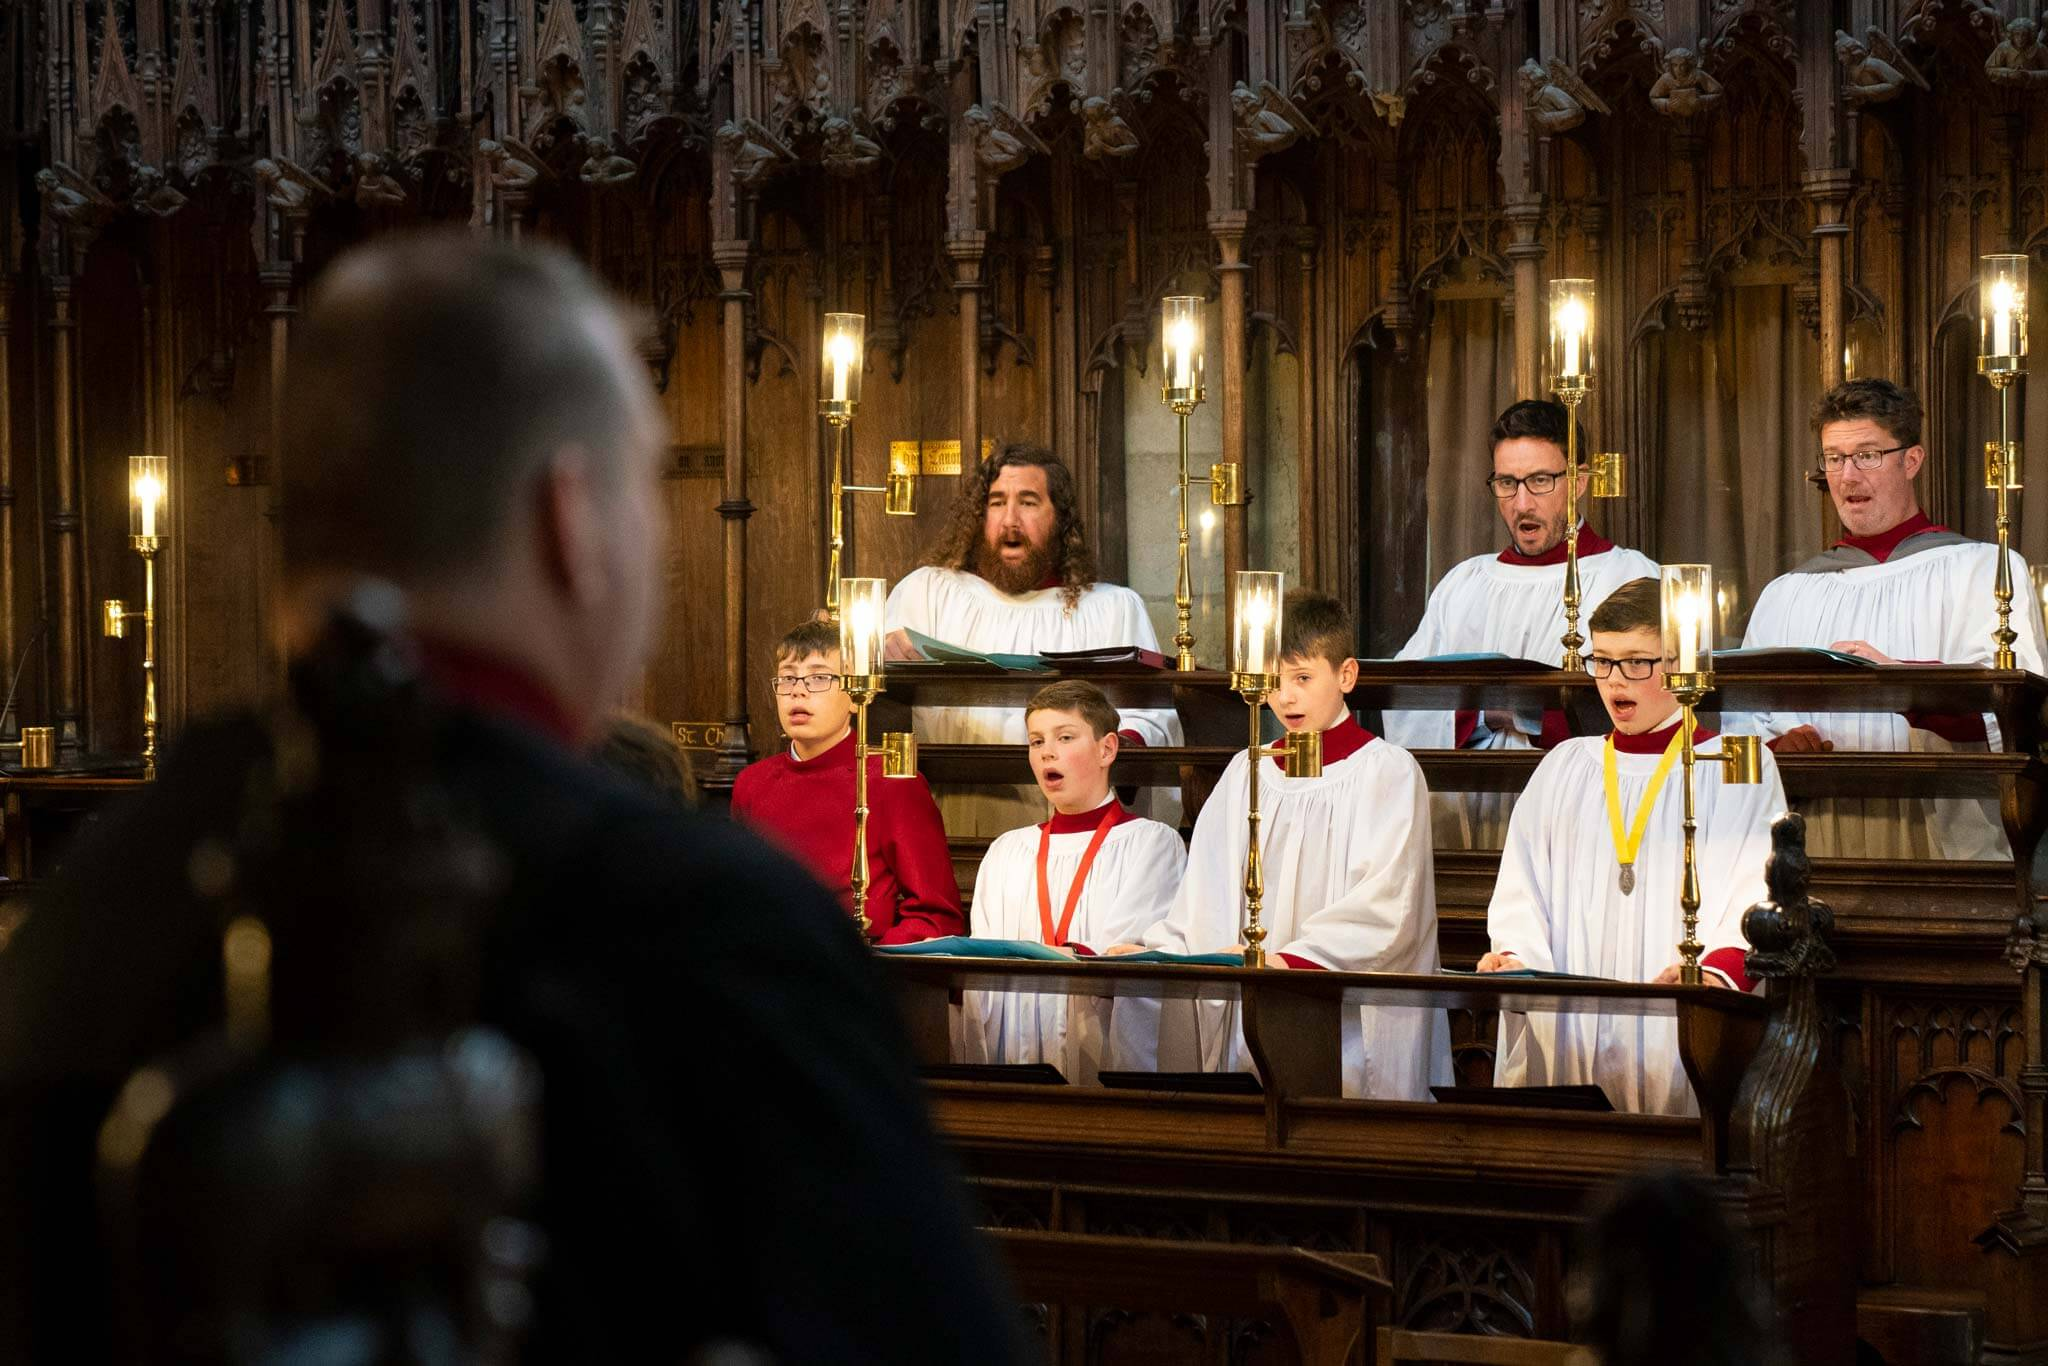 Music crash at another UK cathedral